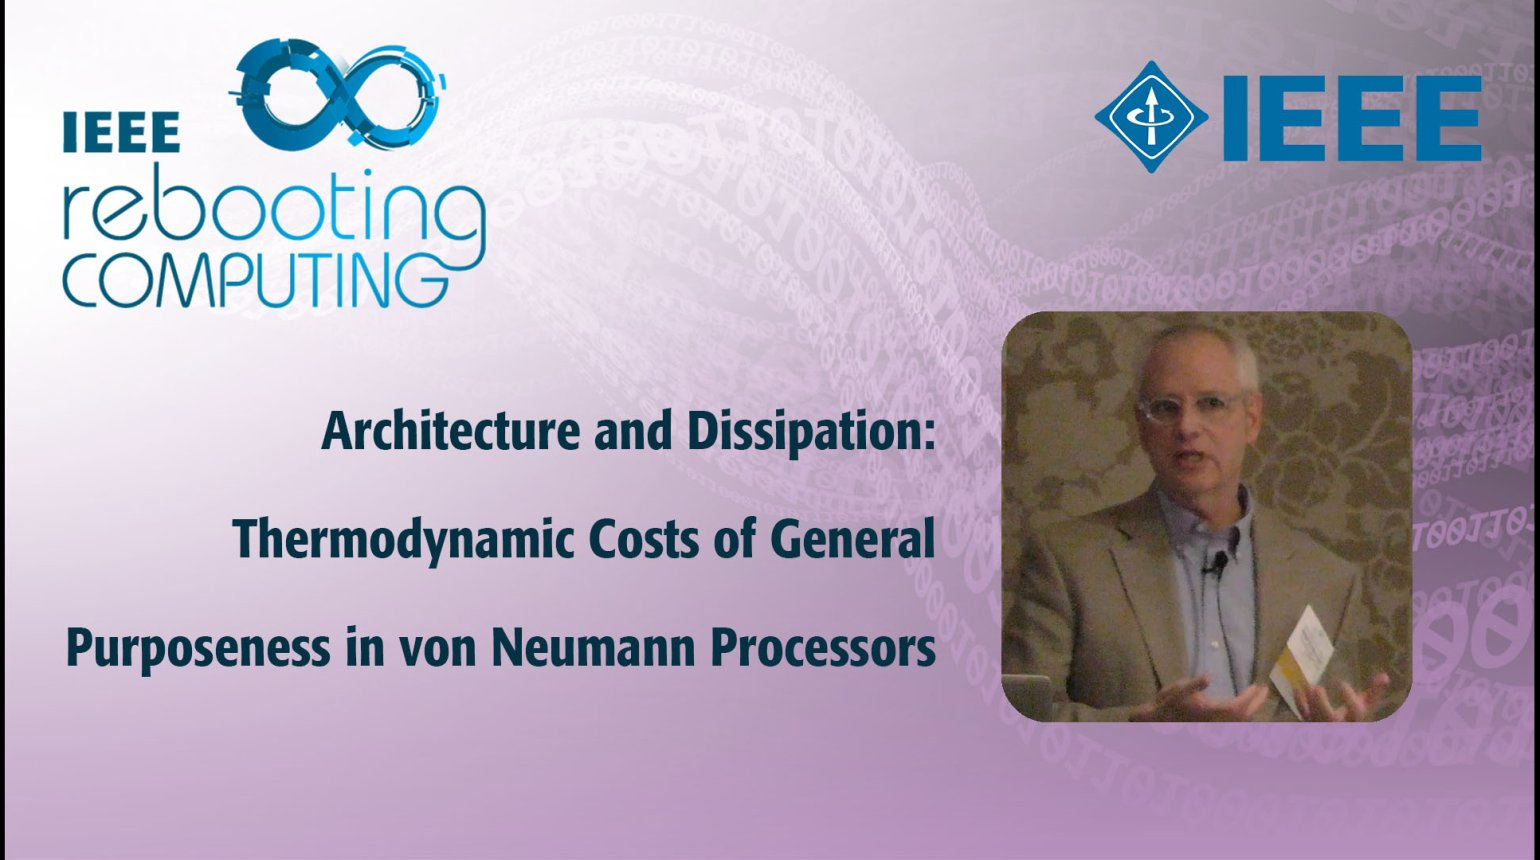 Architecture and Dissipation: Thermodynamic Costs of General Purposeness in von Neumann Processors: IEEE Rebooting Computing 2017